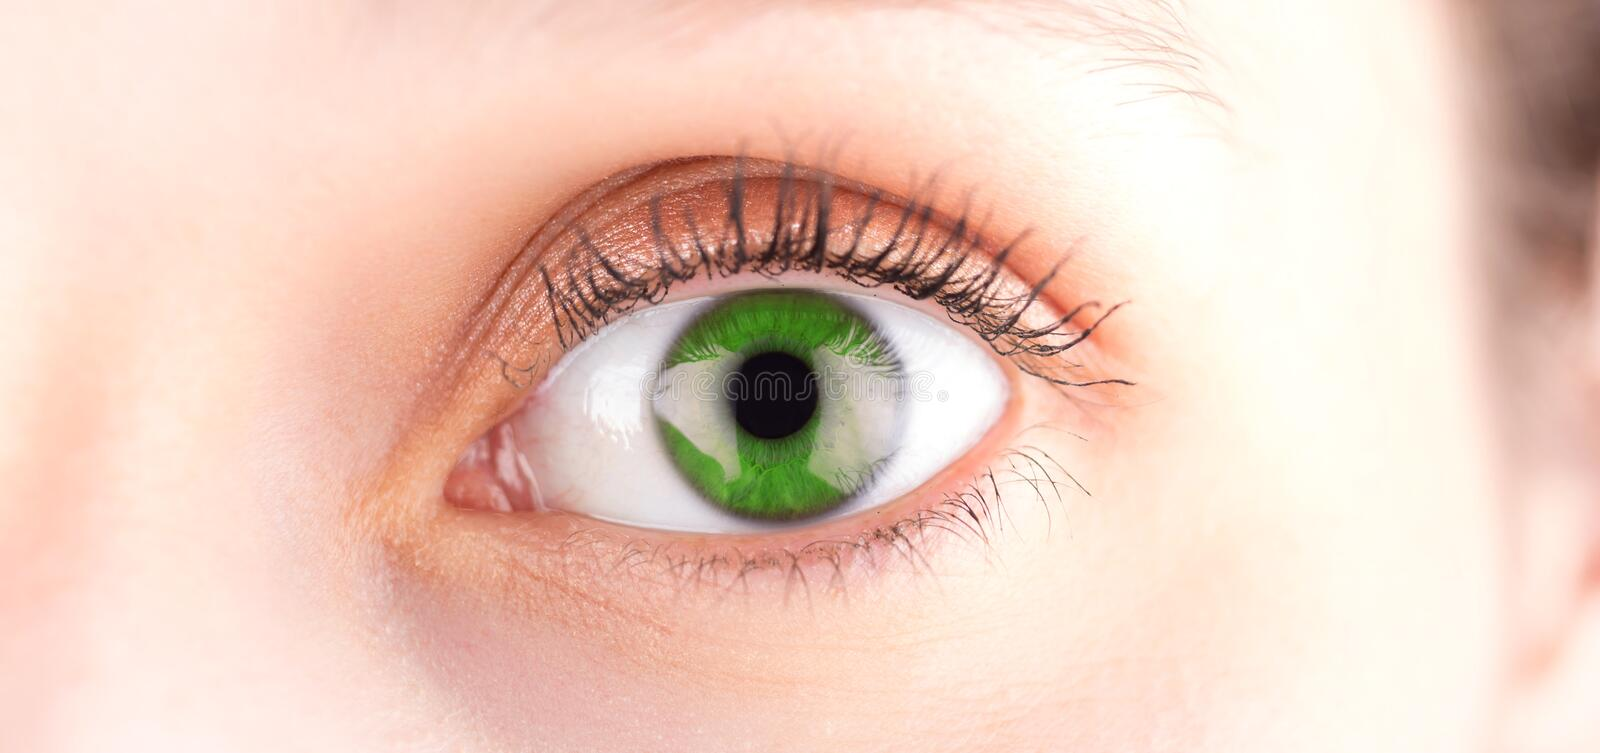 Detailed close up of an green eye in high definition. Detailed close up view of an green eye in high definition royalty free stock photos